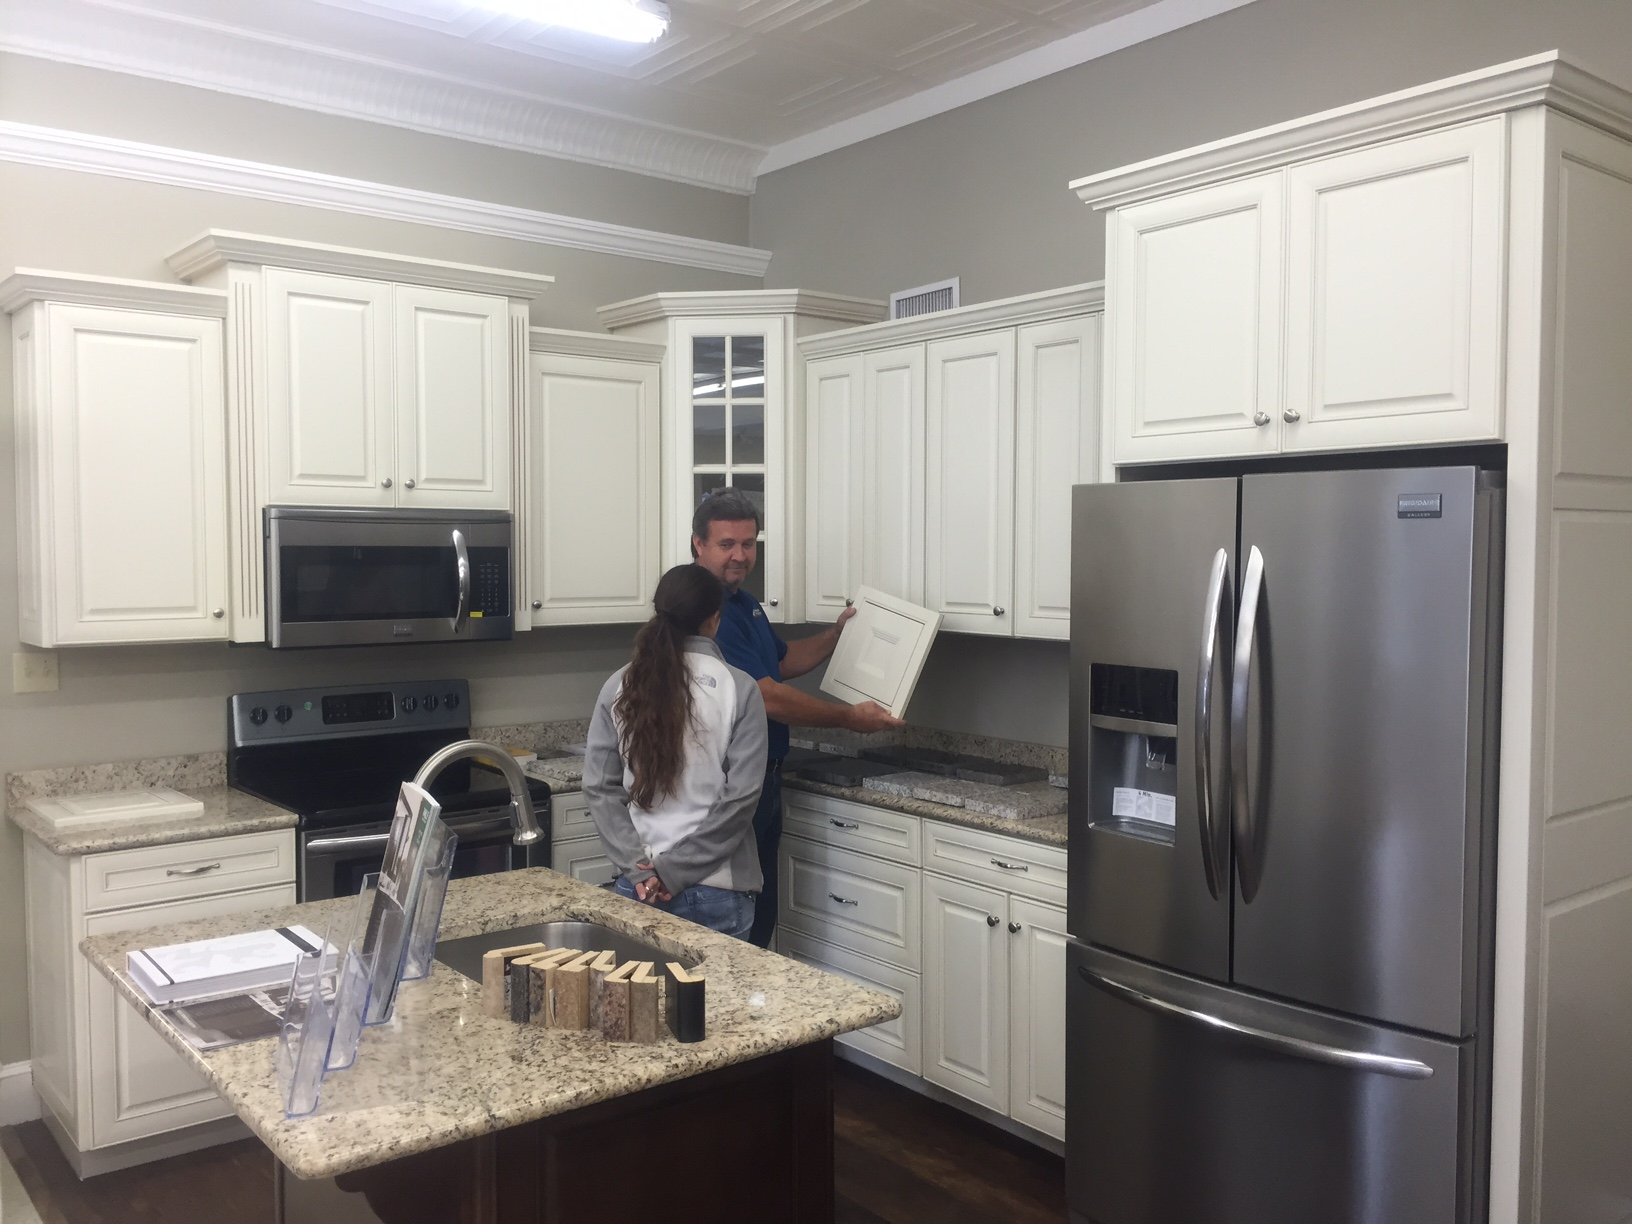 Whether You Are Building Or Remodeling, Short U0026 Paulk Is The Place To Go To  Find All Your Cabinetry Needs. We Offer A Wide Range Of Kitchen And Bath ...